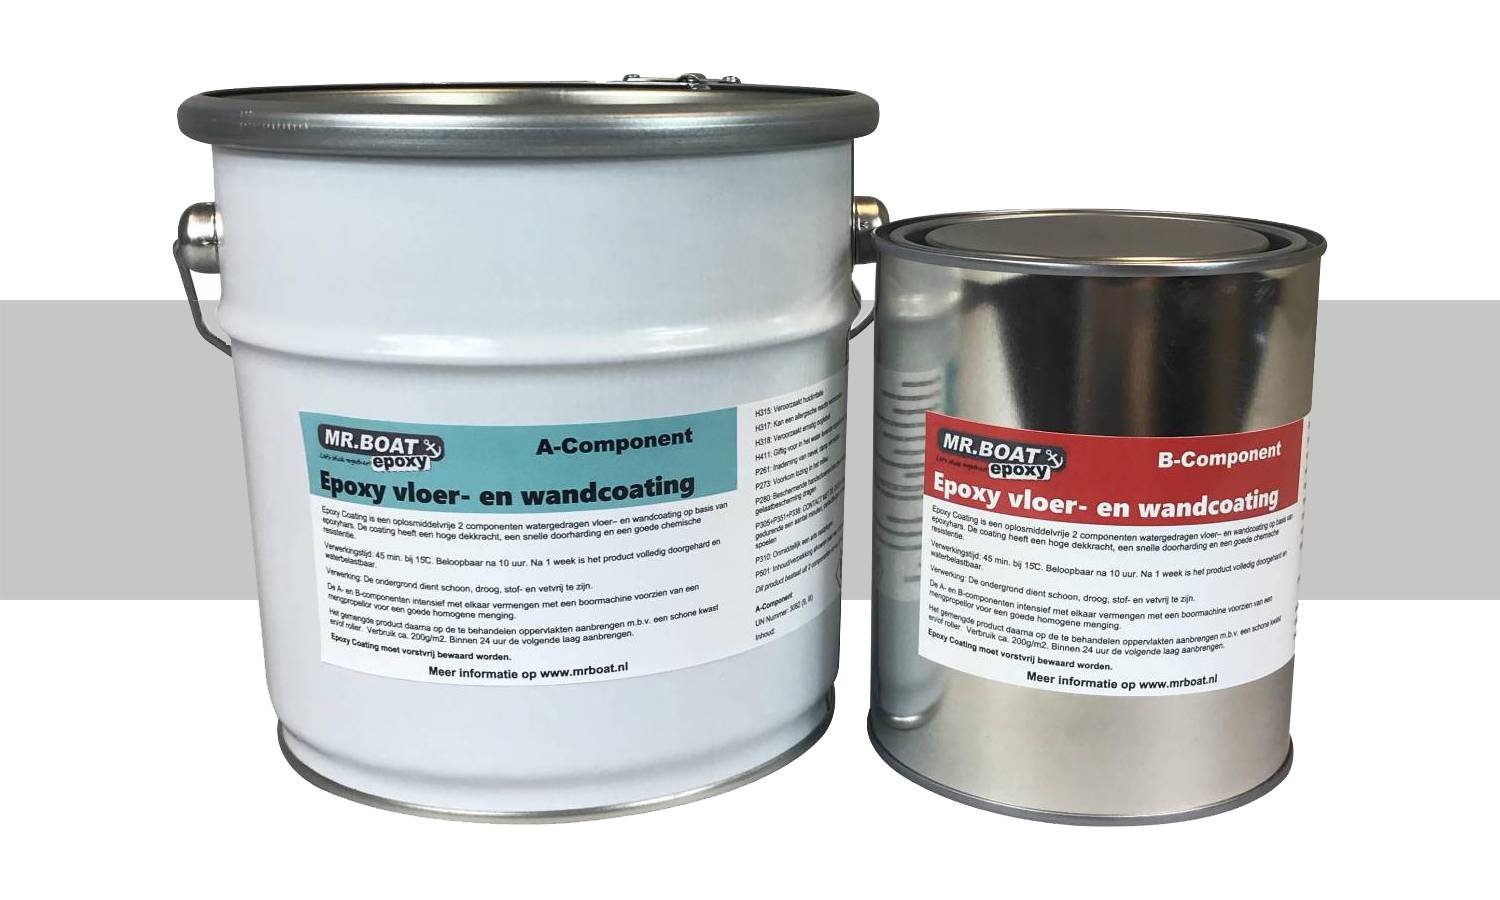 epoxy-vloercoating-ral-7035